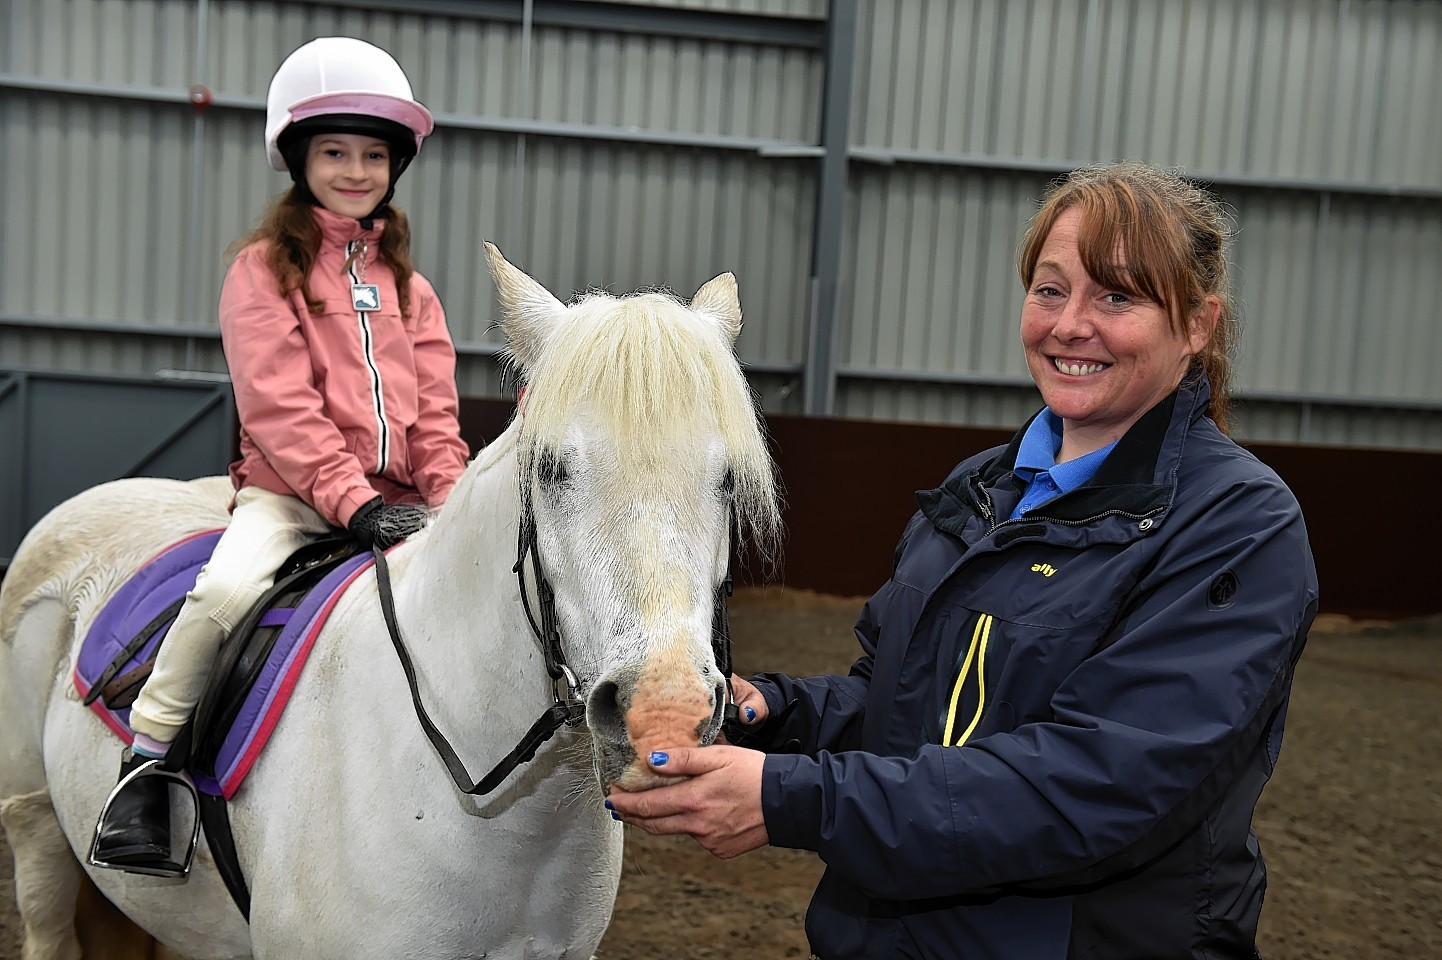 Aberdeen Riding Club manager Sally McCarthy with nine-year-old Abigail Gray.